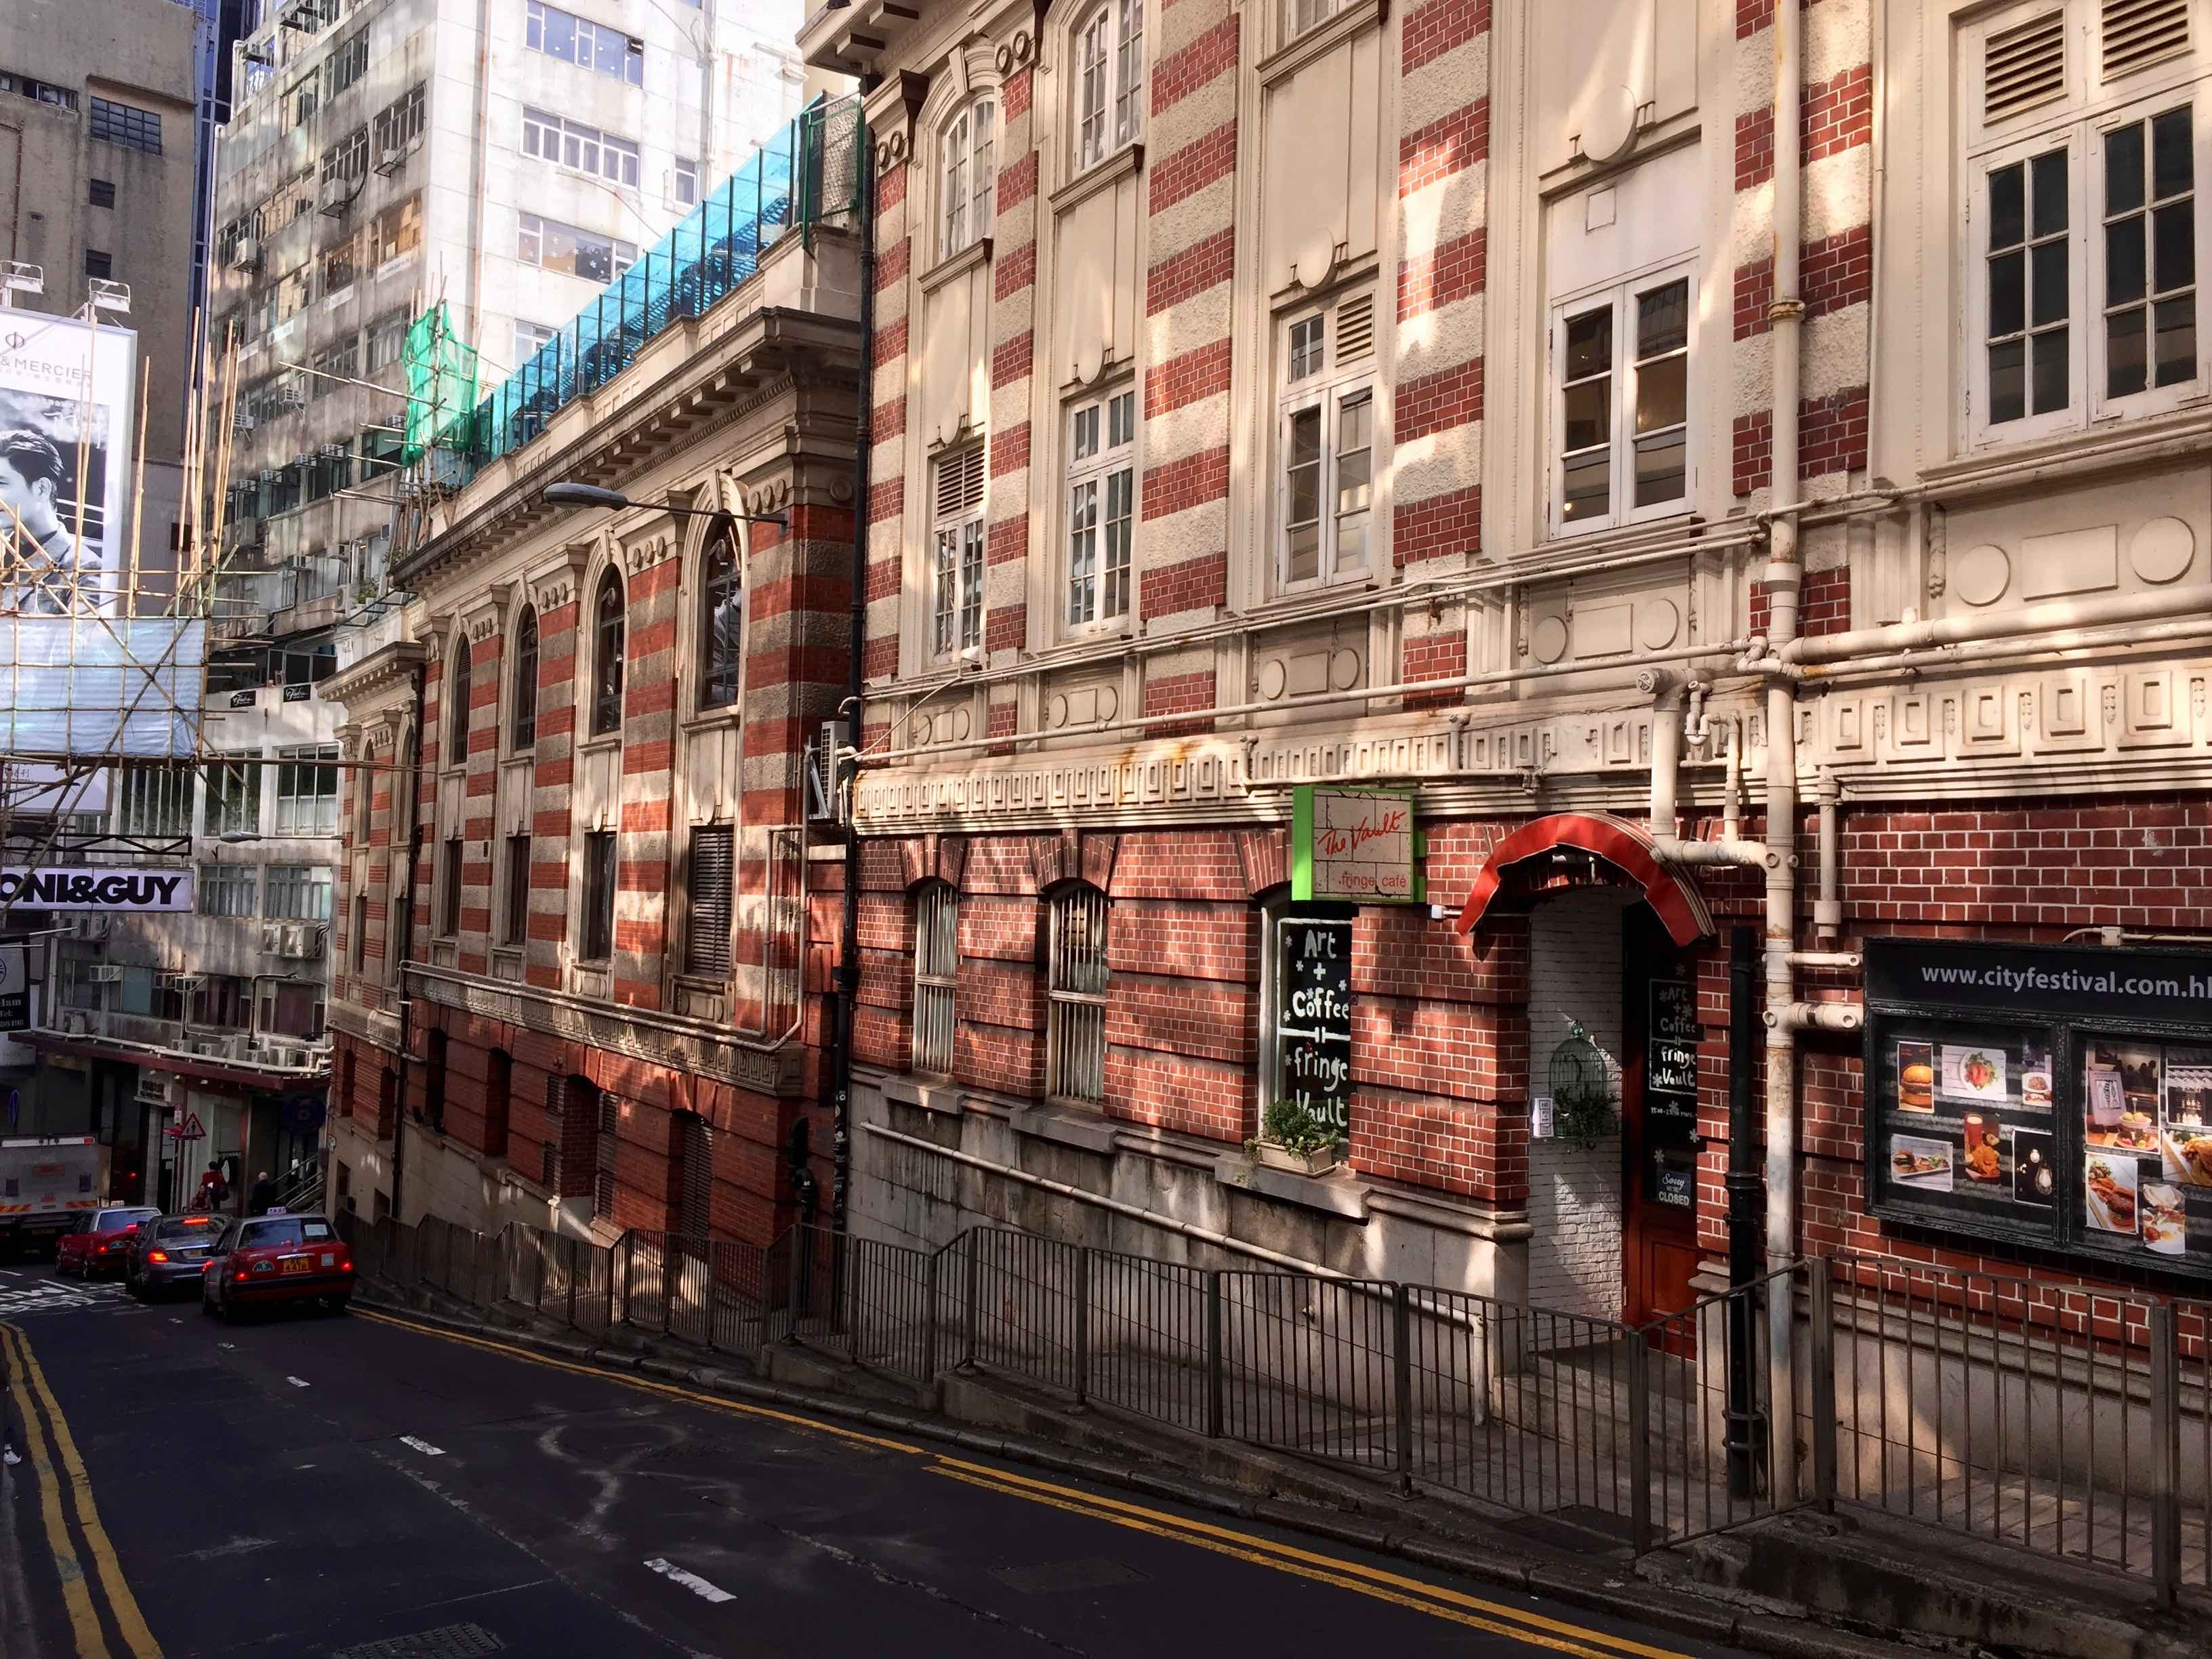 Wyndham Street-haven for restaurants and bars